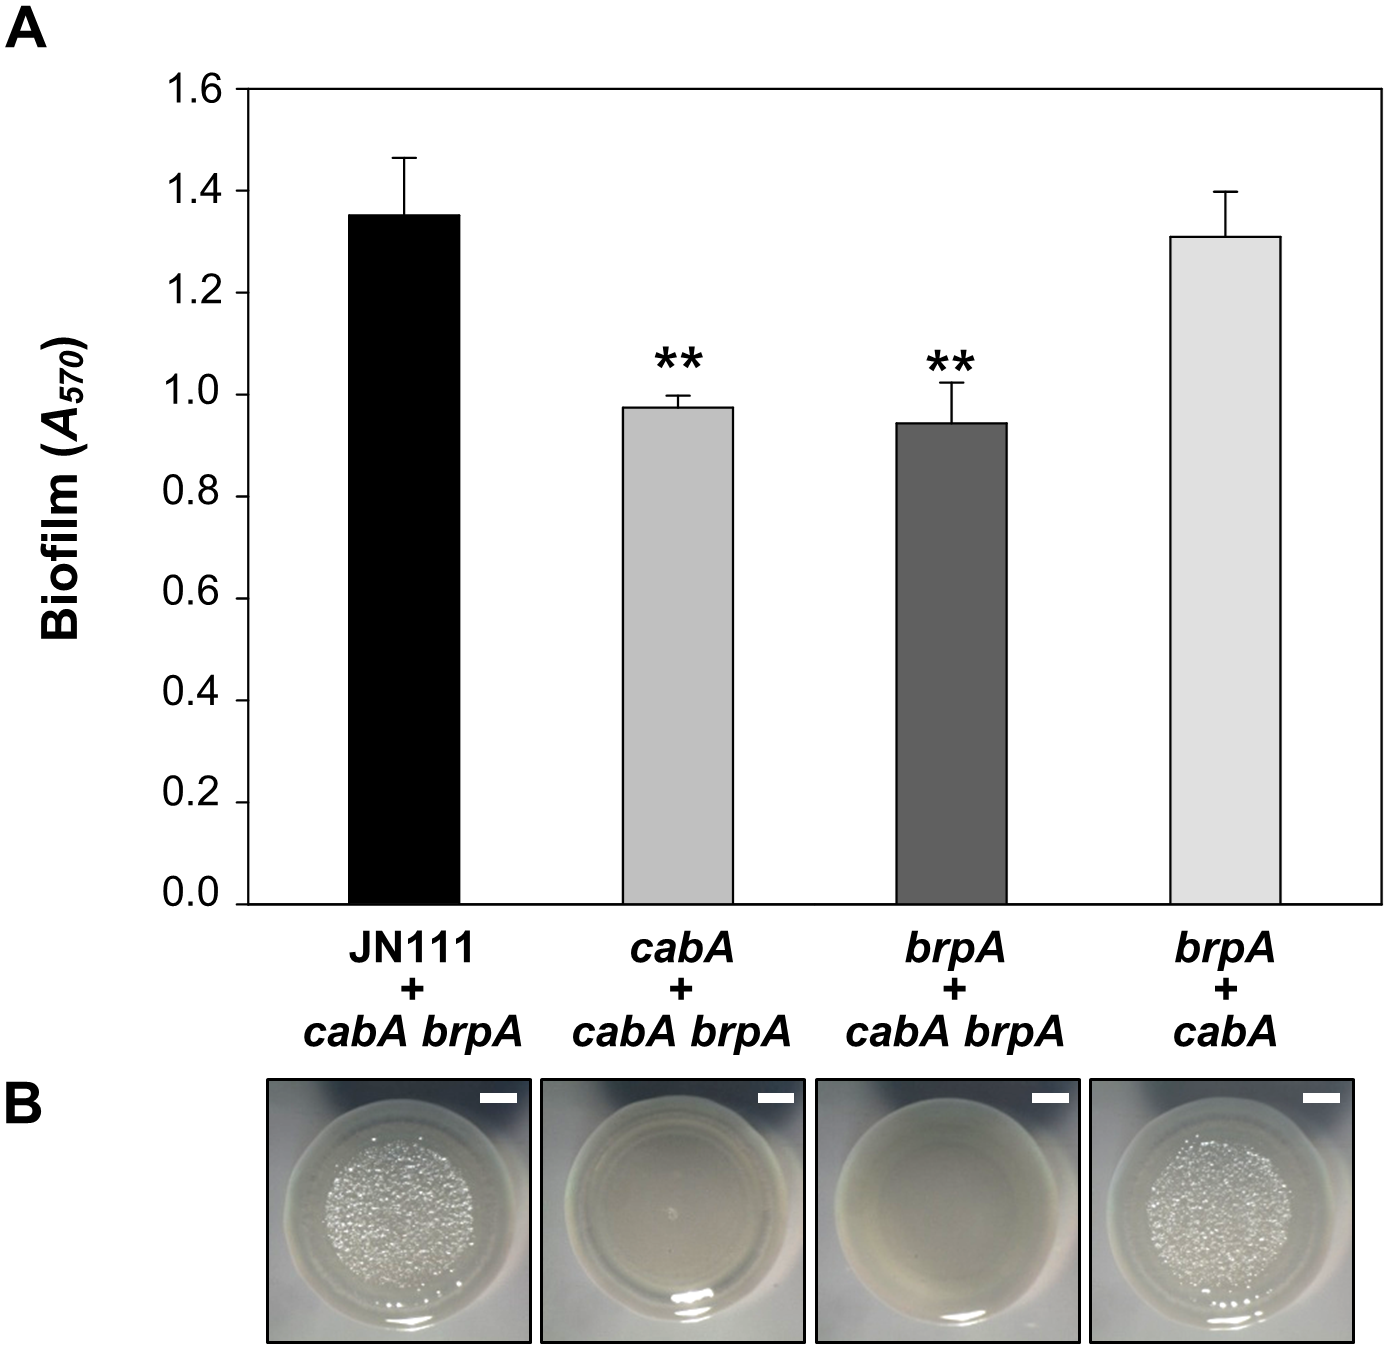 Extracellular complementation by co-culturing the mutants which lack either EPS or CabA.